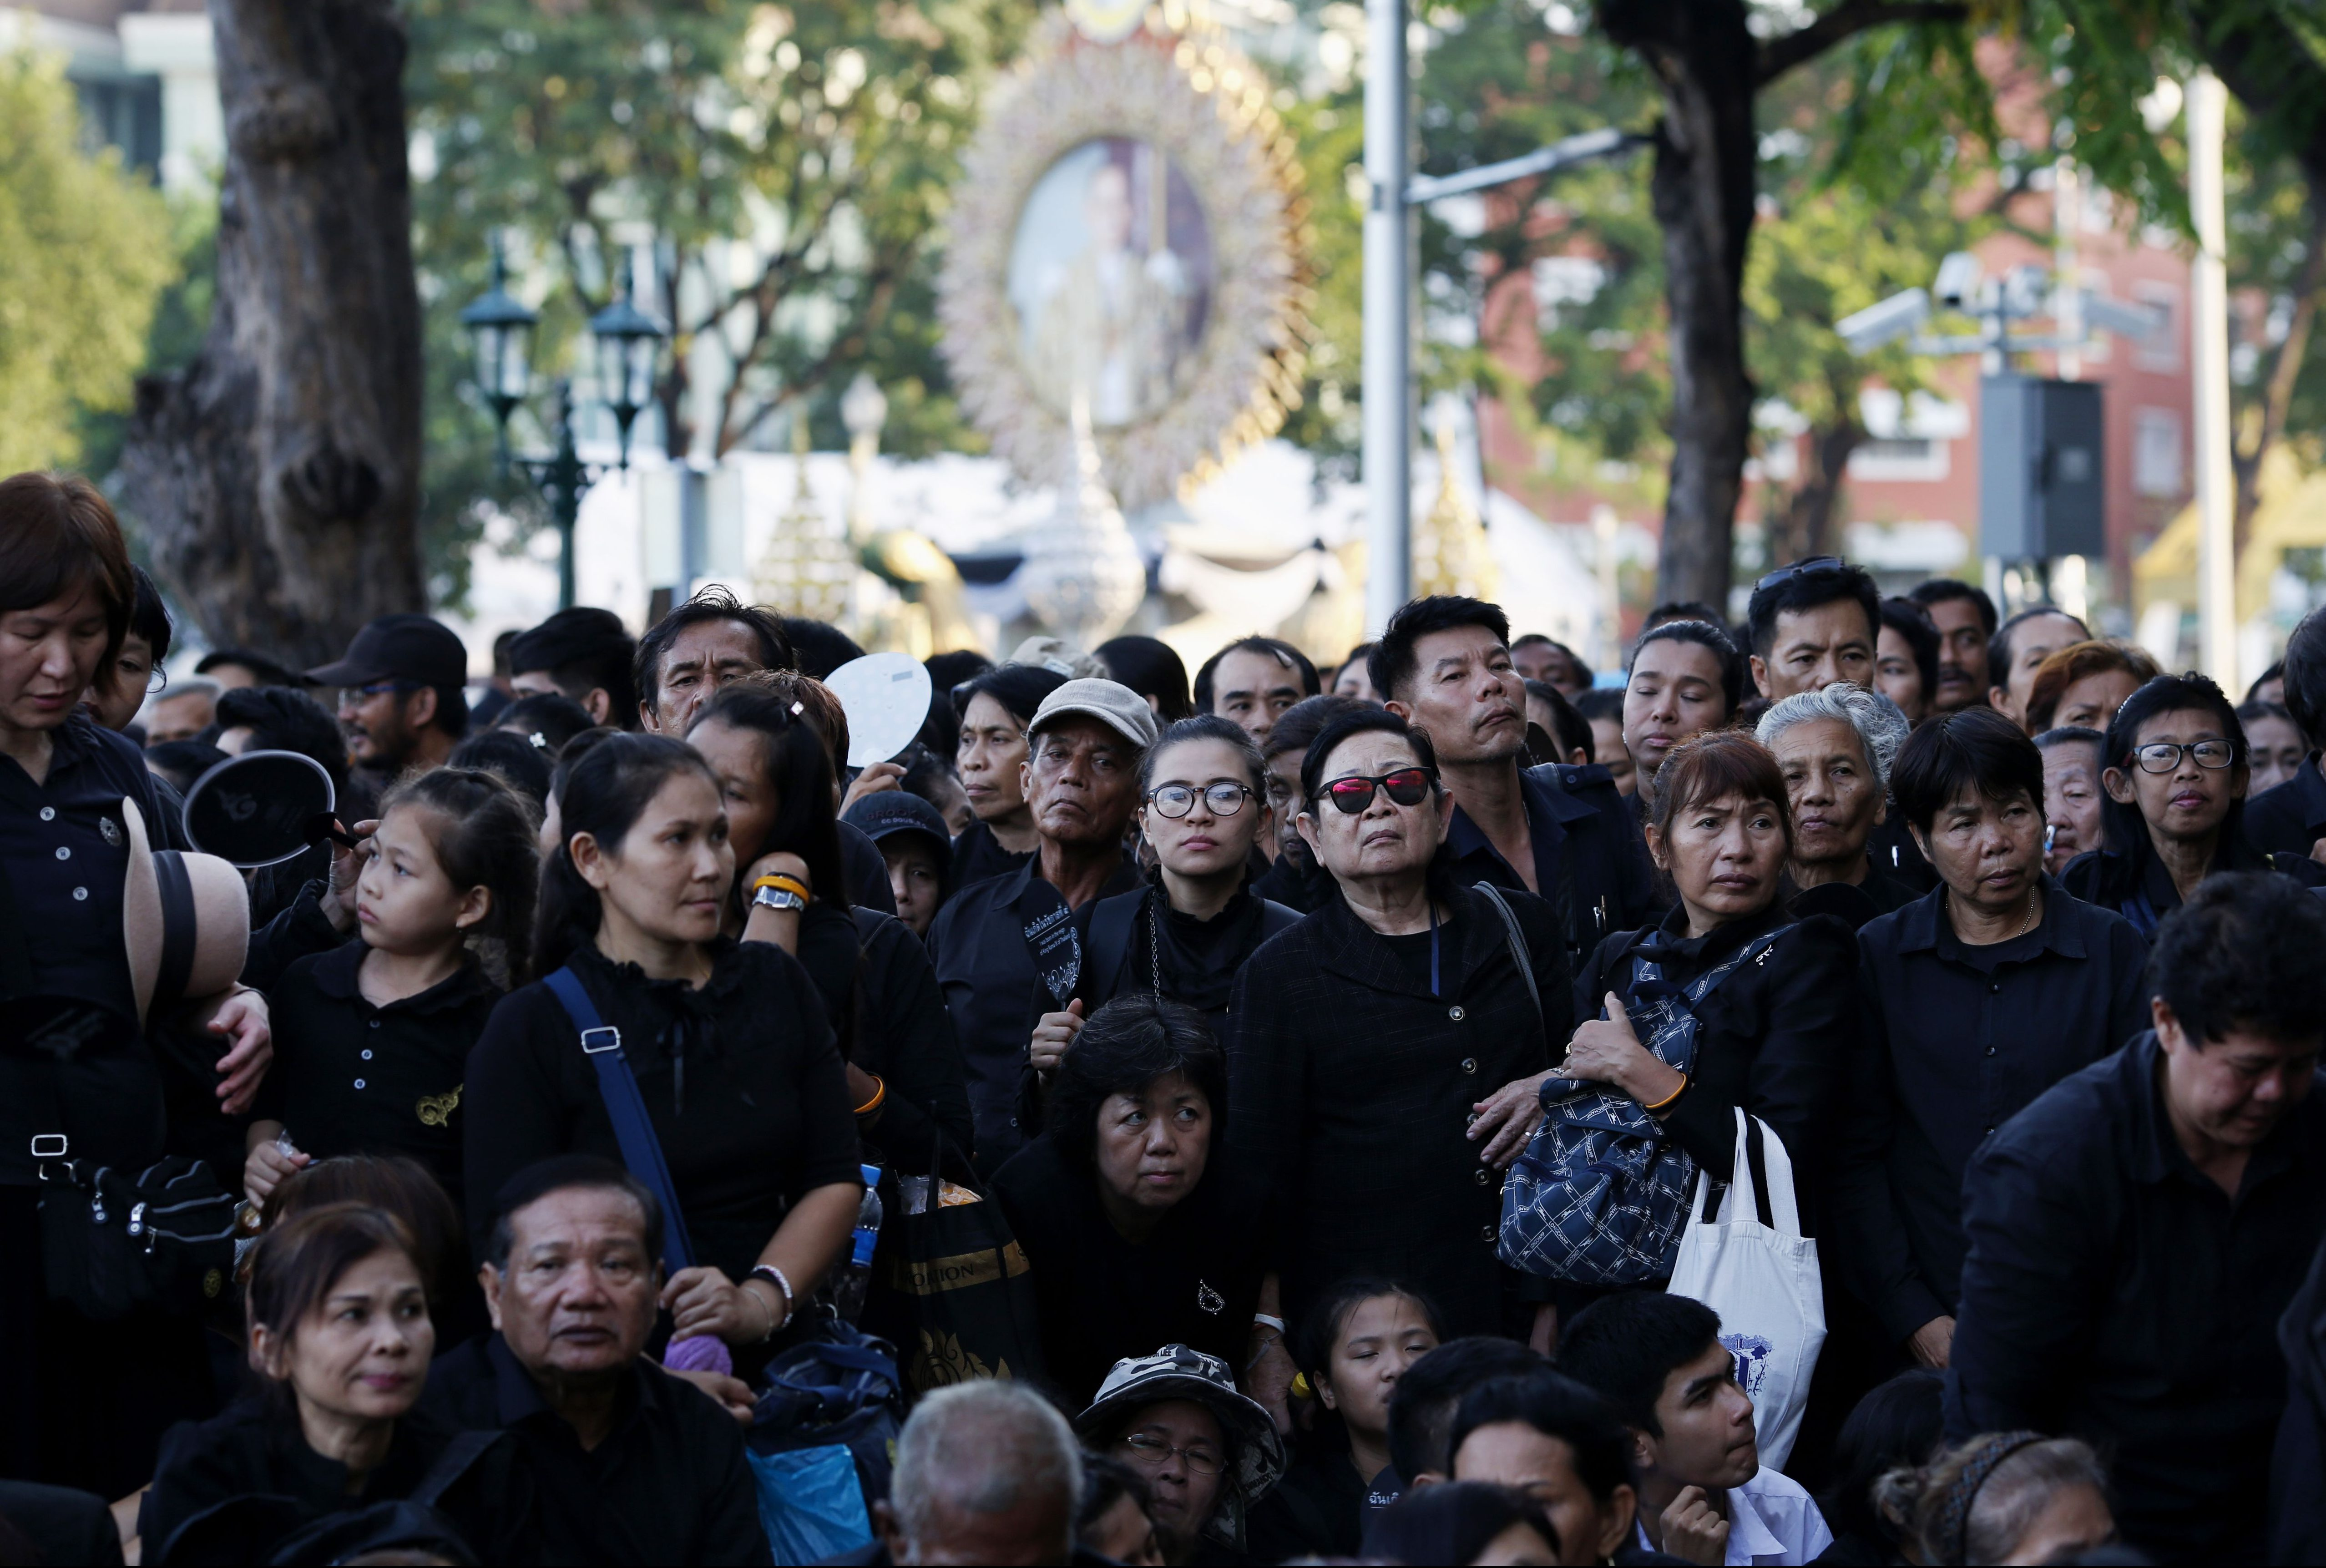 Thai mourners queue up to attend the Royal Cremation ceremony of the late Thai King Bhumibol Adulyadej on Oct. 25.